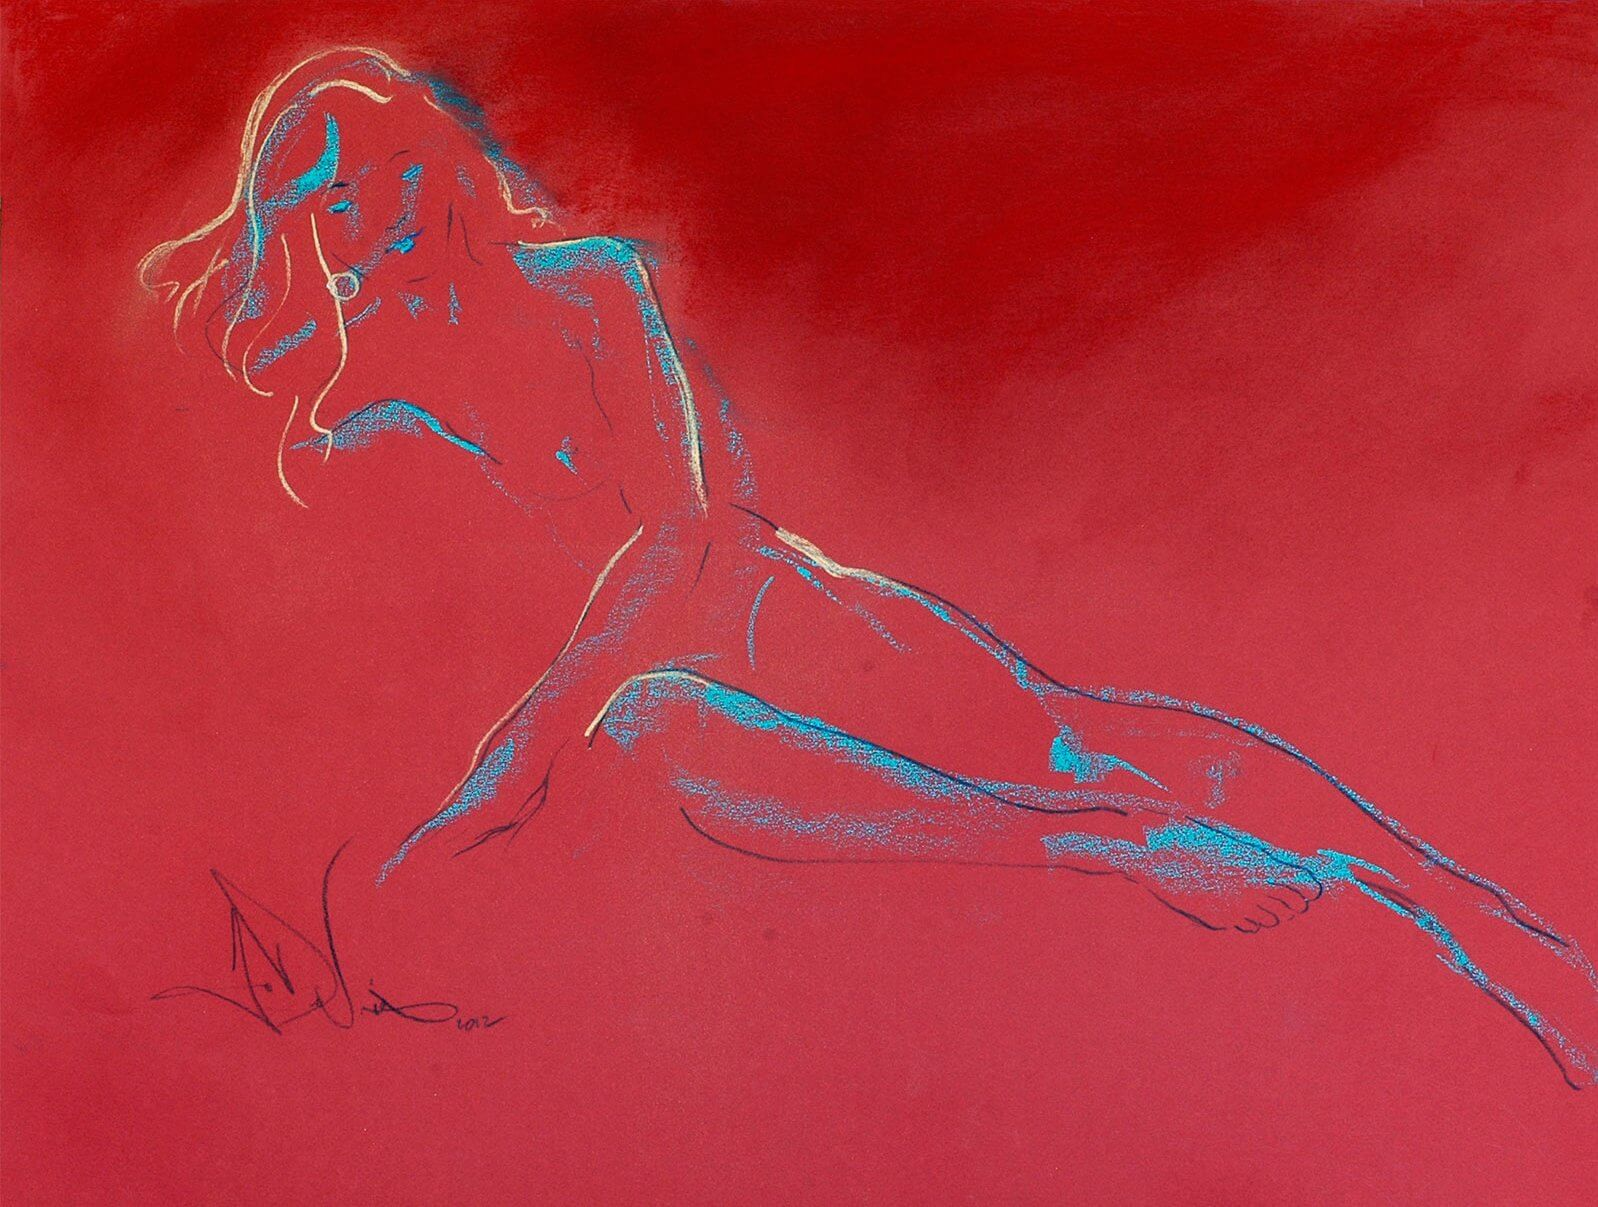 Shades of Red a figurative pastel drawing of a live model by Andrew DeVries